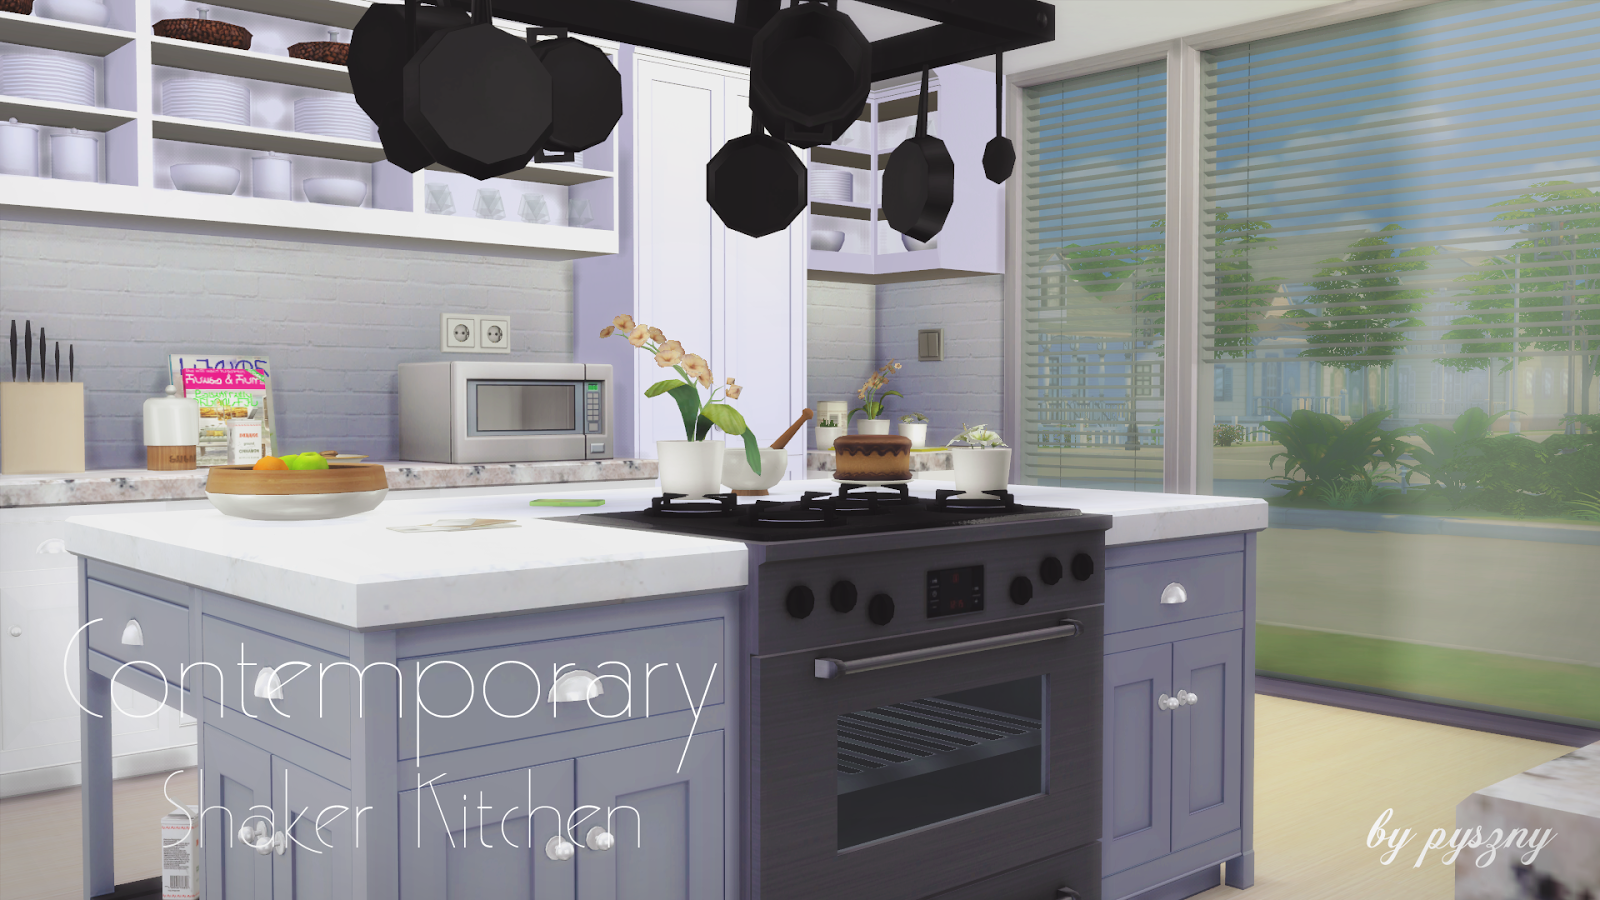 my sims 4 blog contemporary shaker kitchen set by pyszny